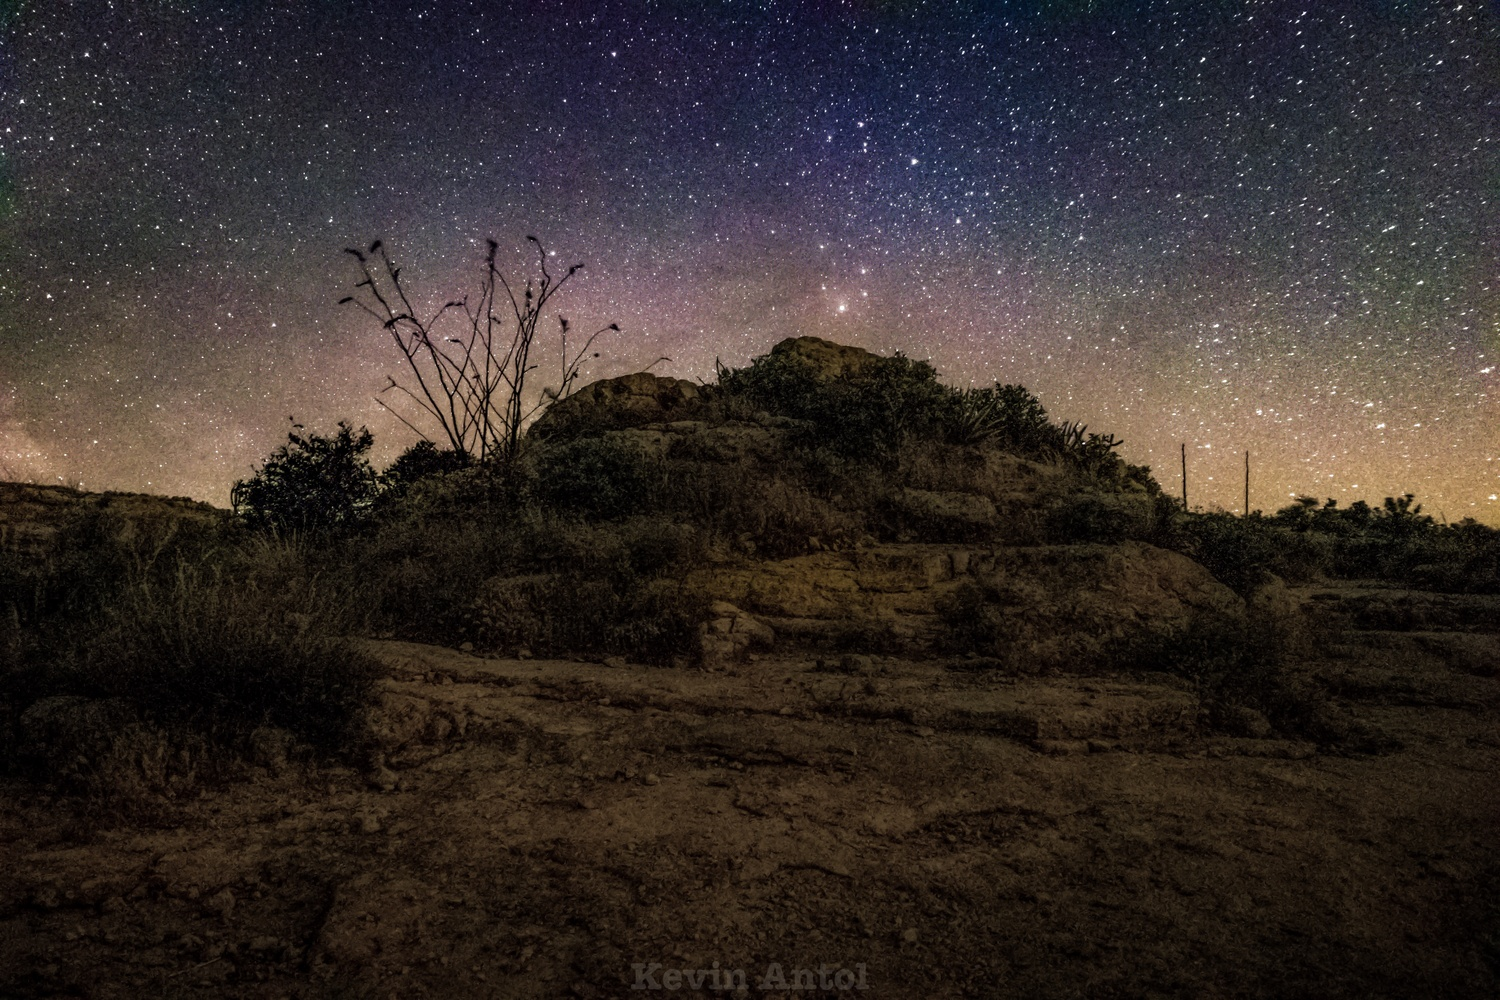 Superstition Nights by Kevin Antol